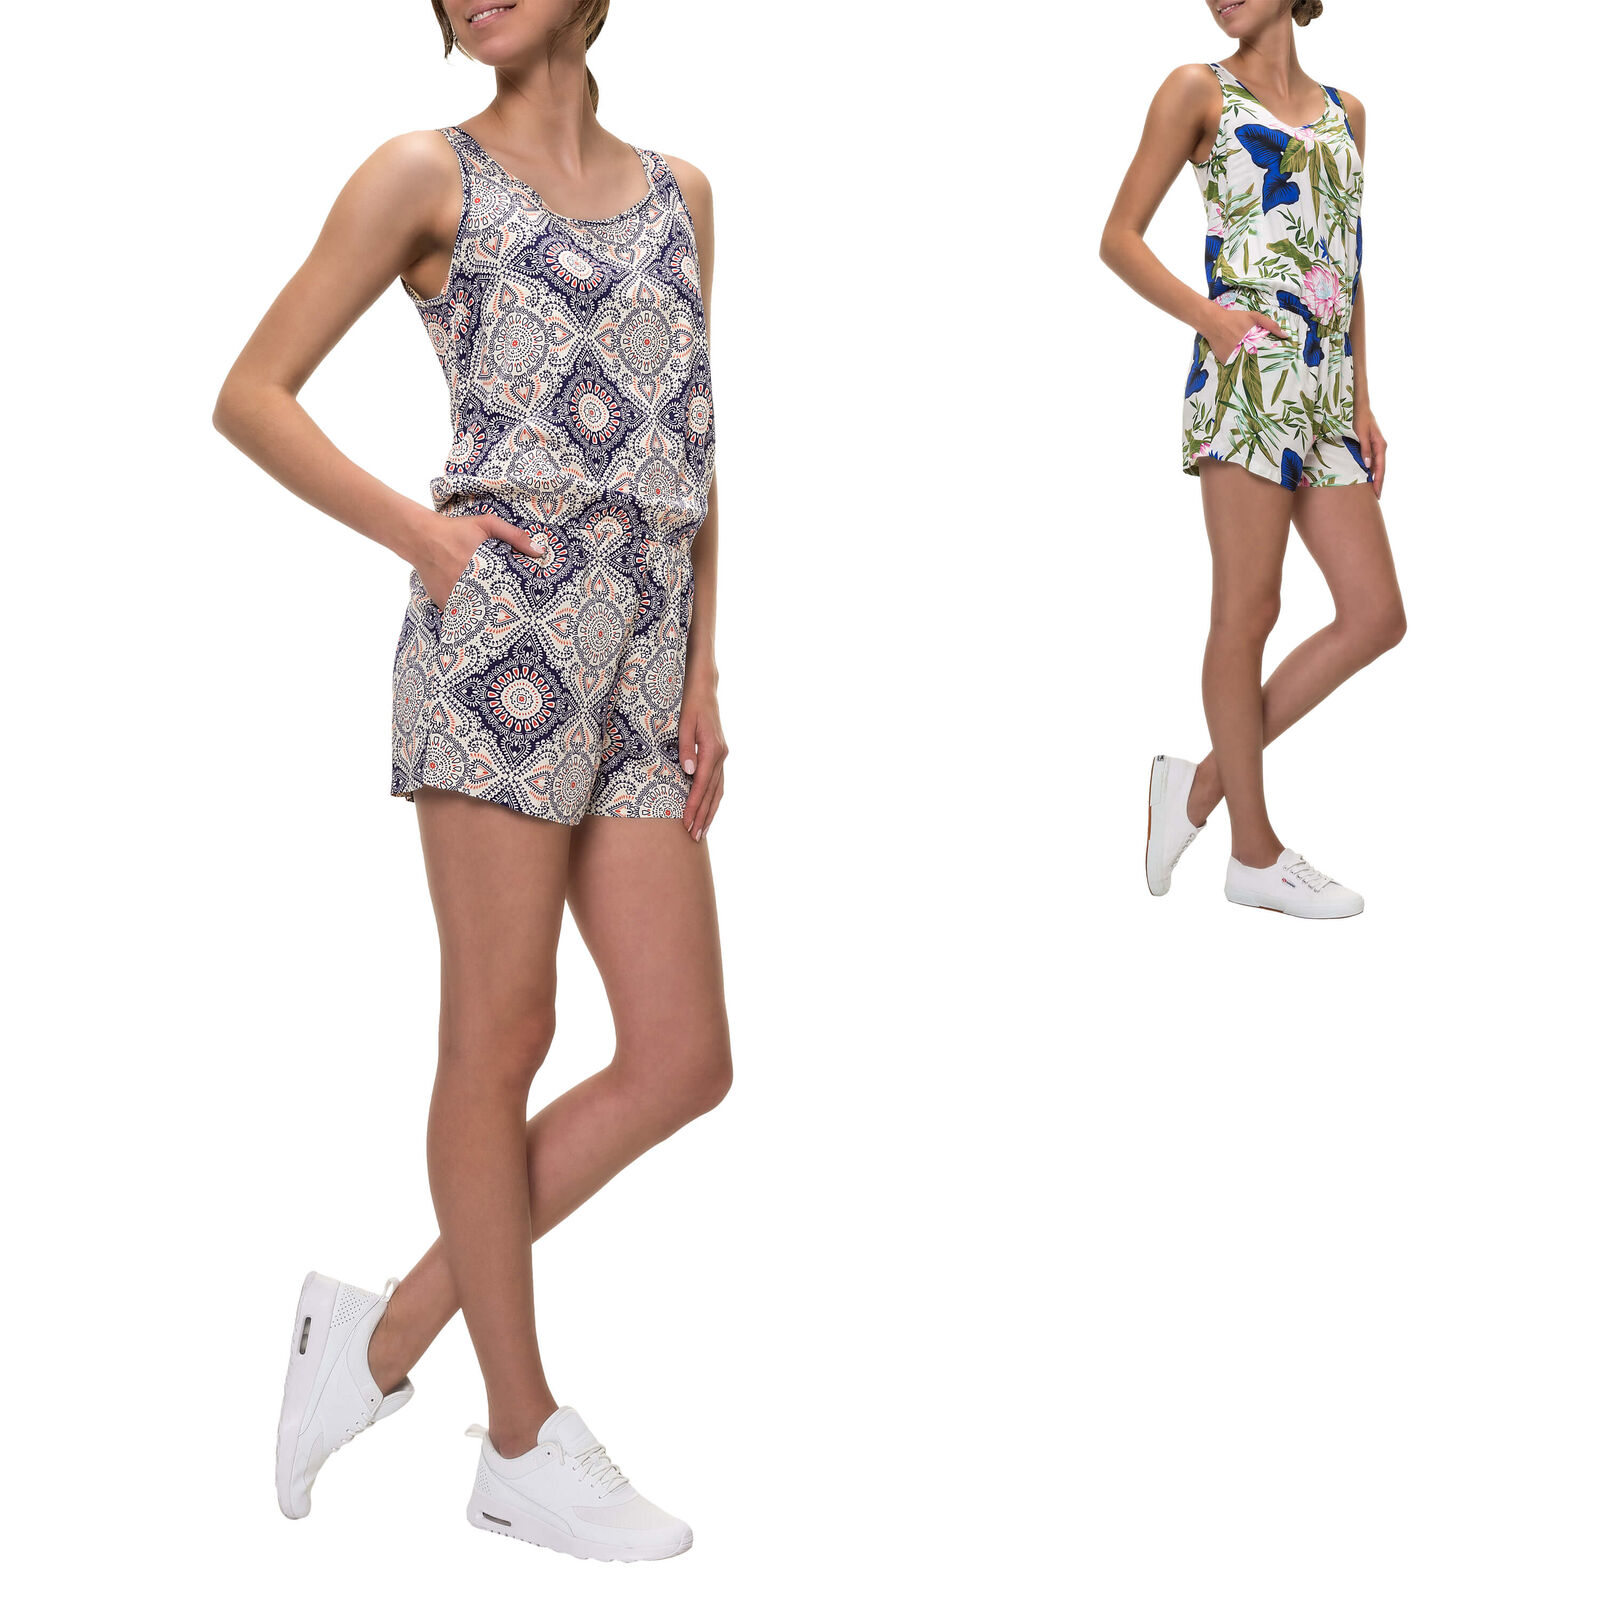 Only Femmes Femmes Femmes Playsuit Combinaison Combishort Jumpsuit Aop Print Color Mix SALE% 687b79